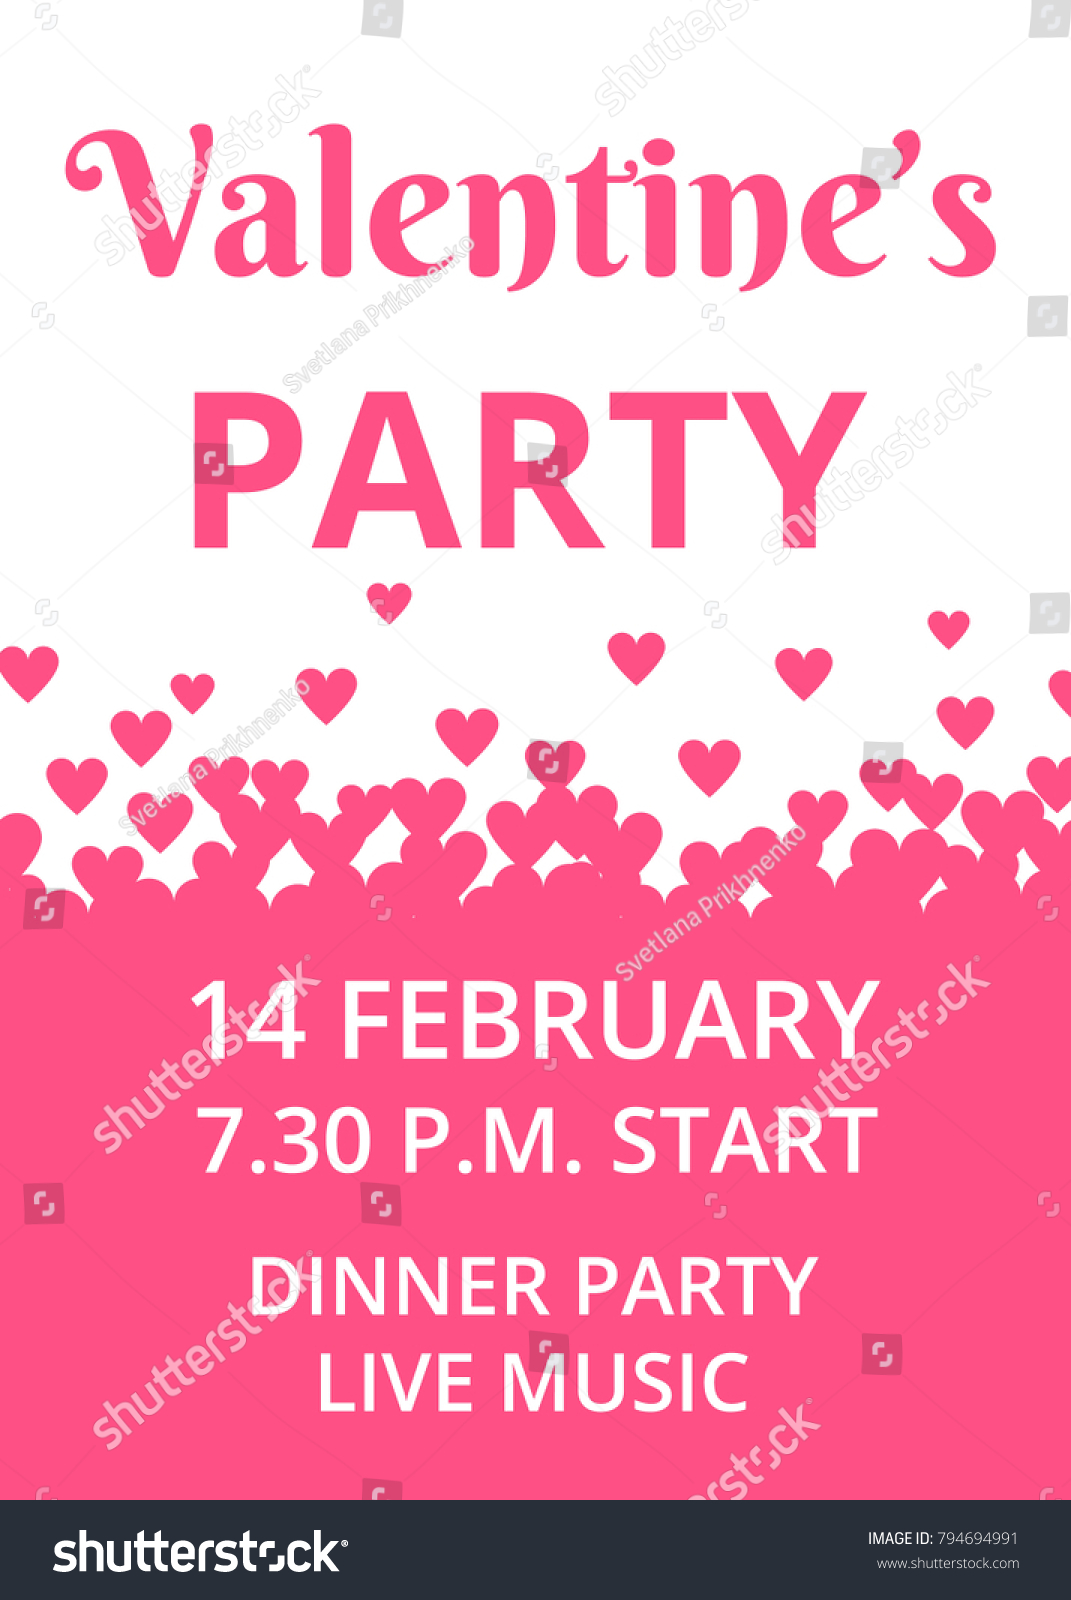 Valentines Day Party Invitation Card Hearts Stock Vector 794694991 ...